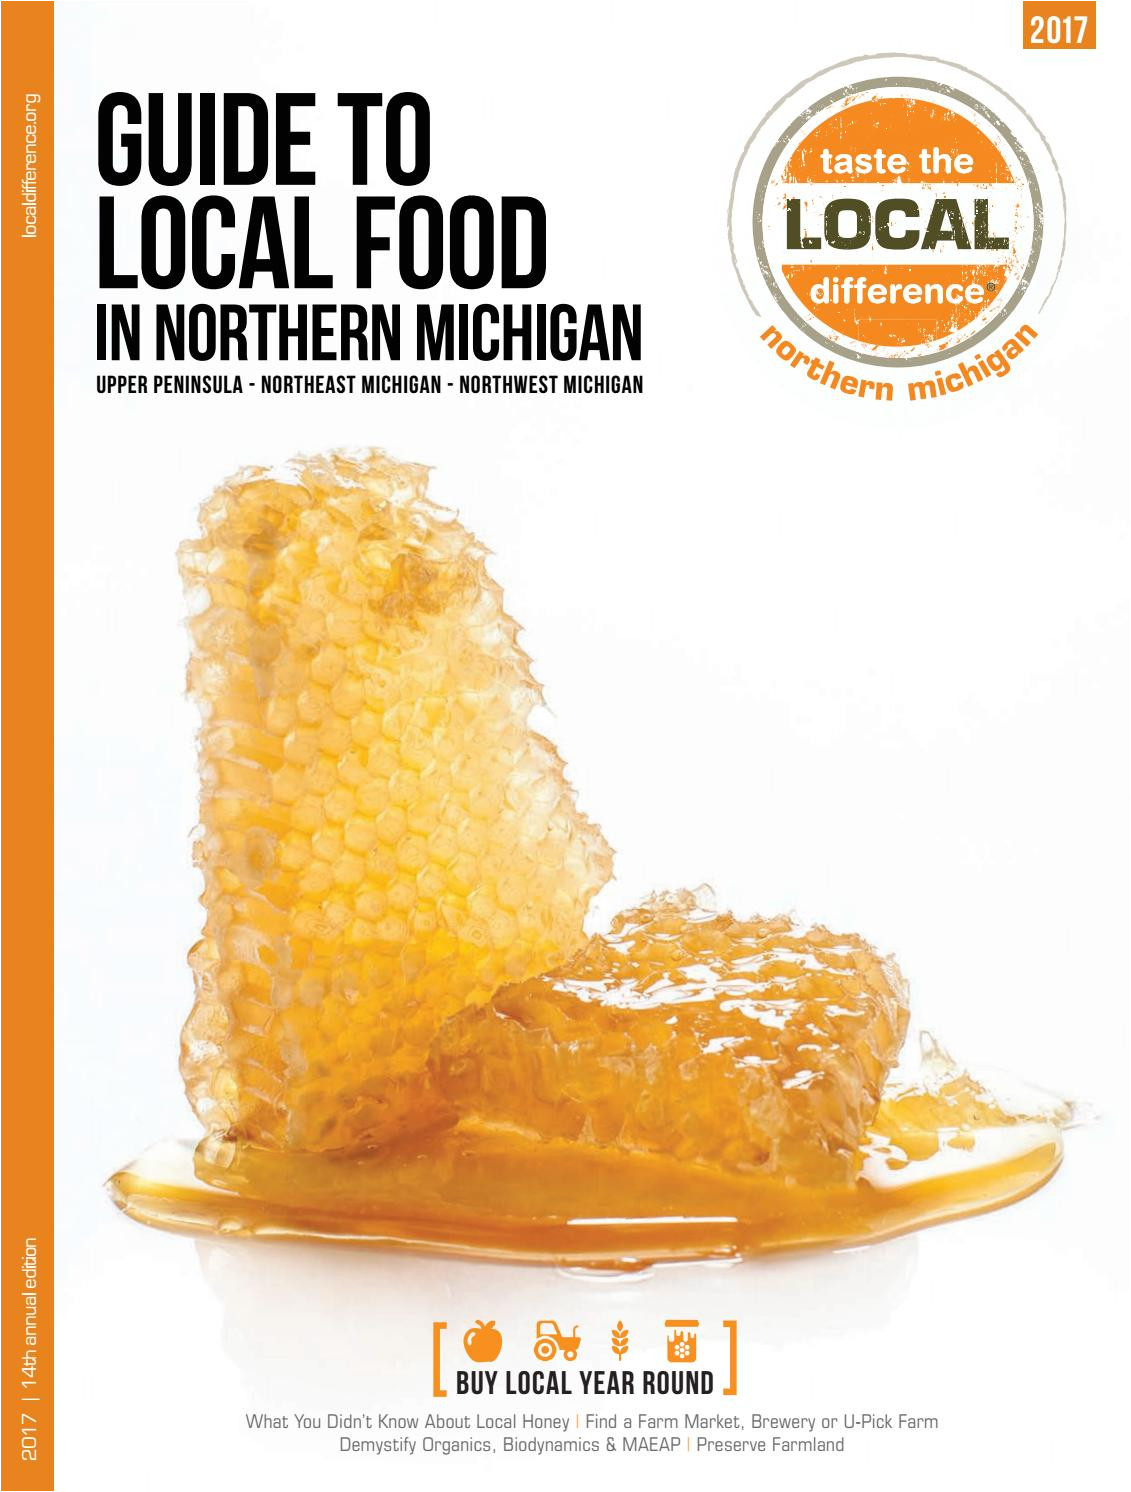 Tom S Food Market Interlochen Mi 2017 Guide to Local Food for northern Michigan by Taste the Local